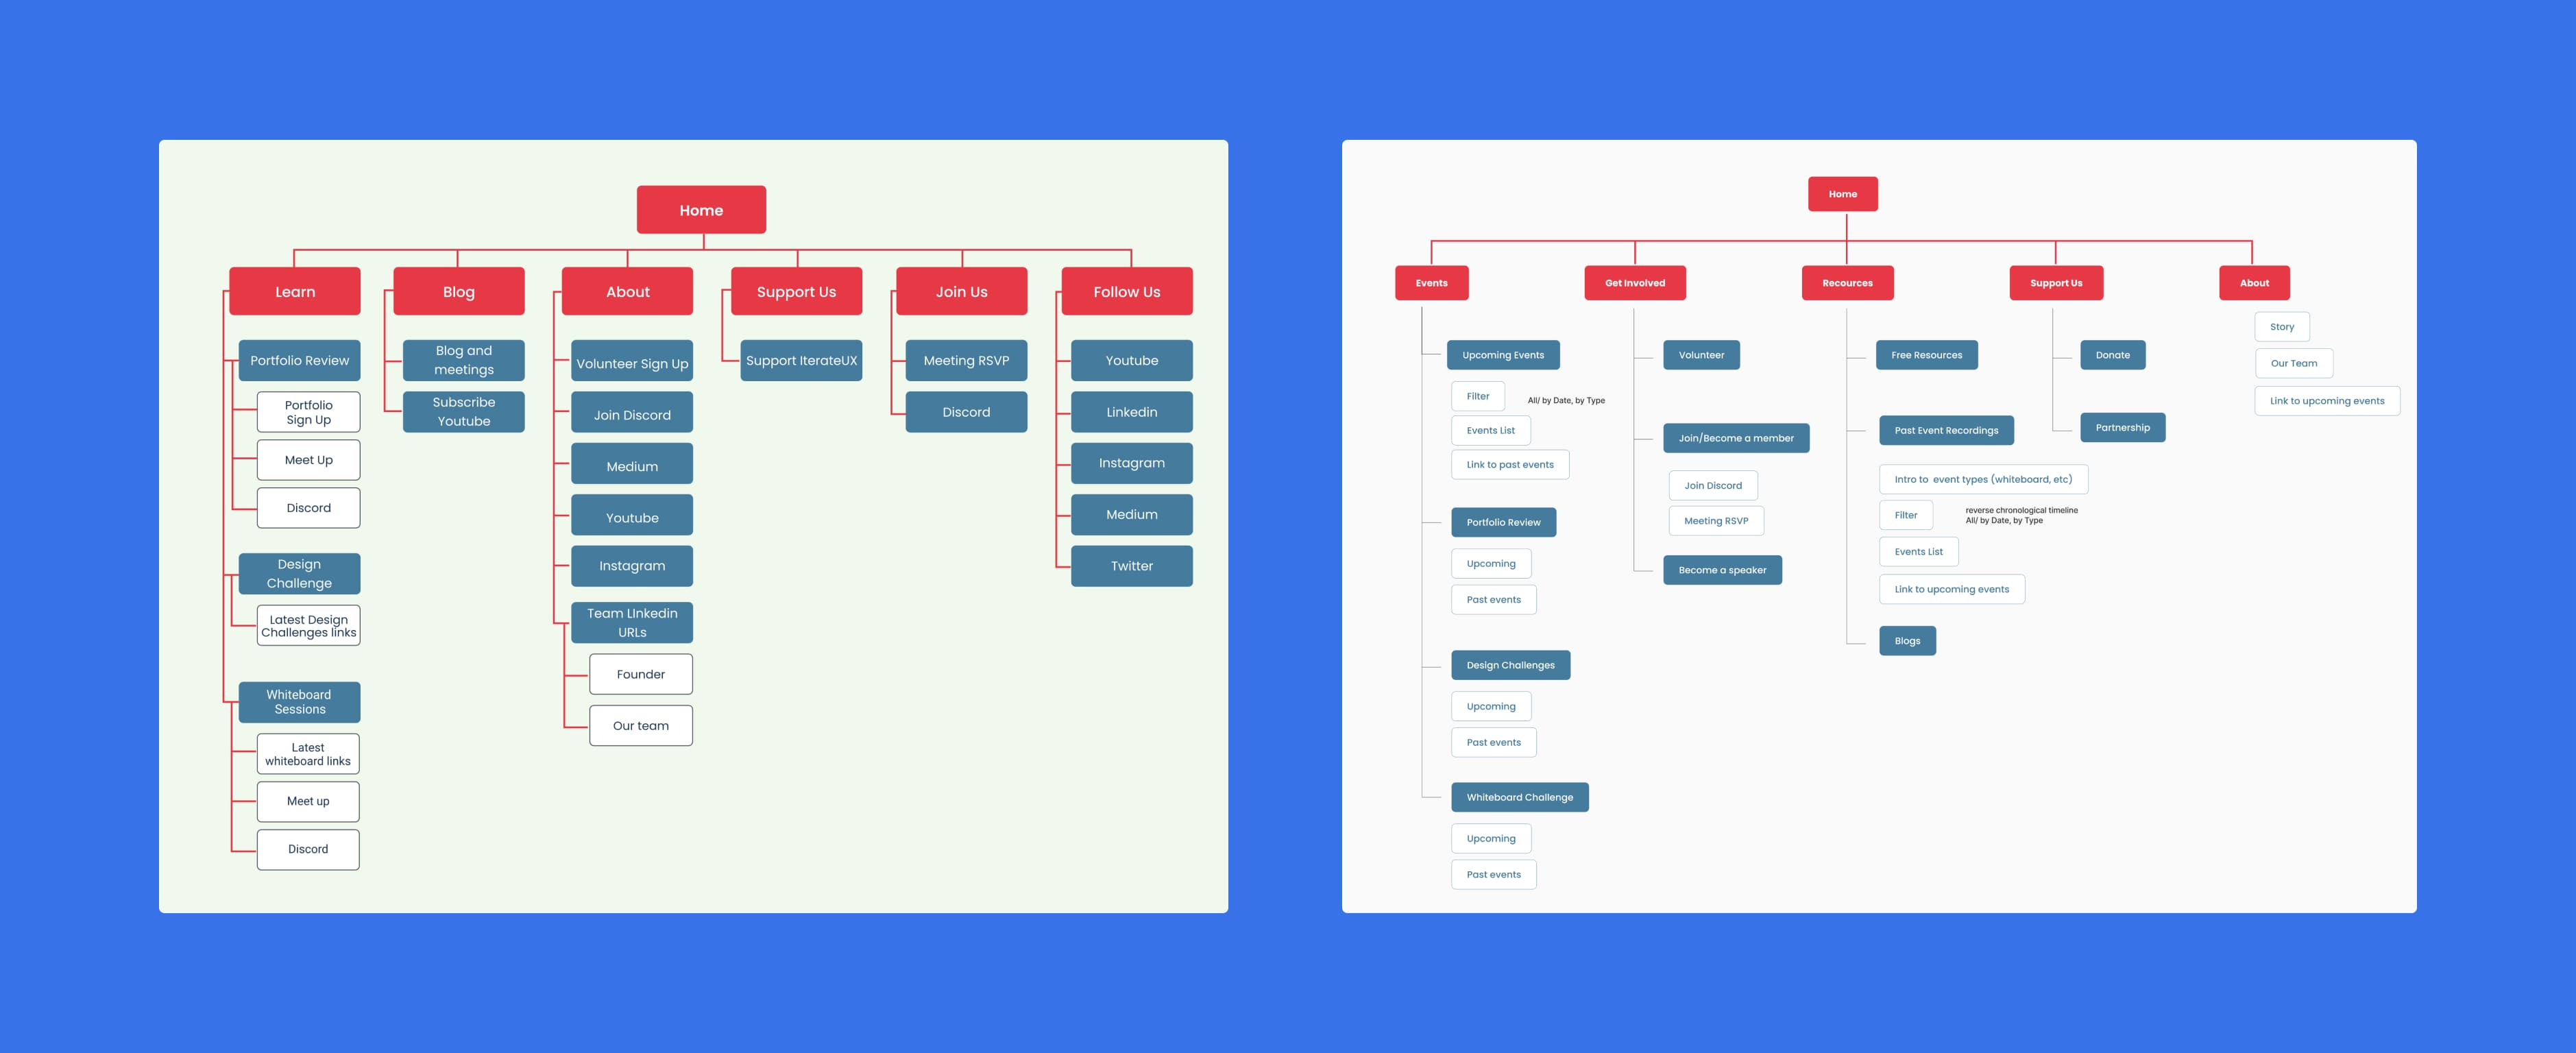 comparing an old, unclear sitemap with a new, clearer one